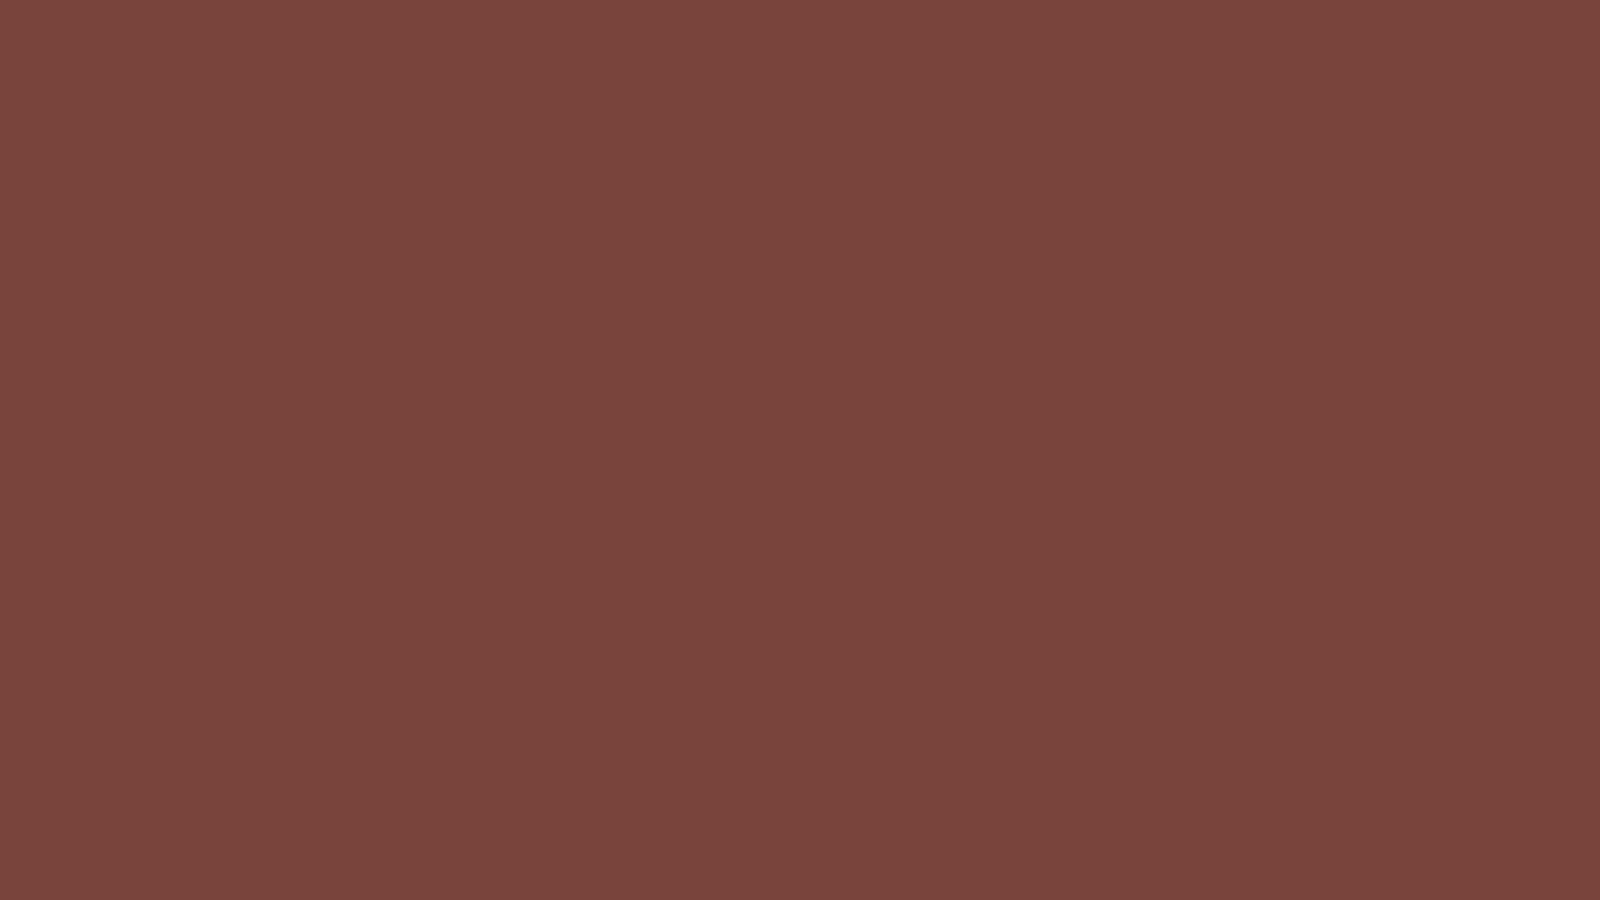 1600x900 Medium Tuscan Red Solid Color Background